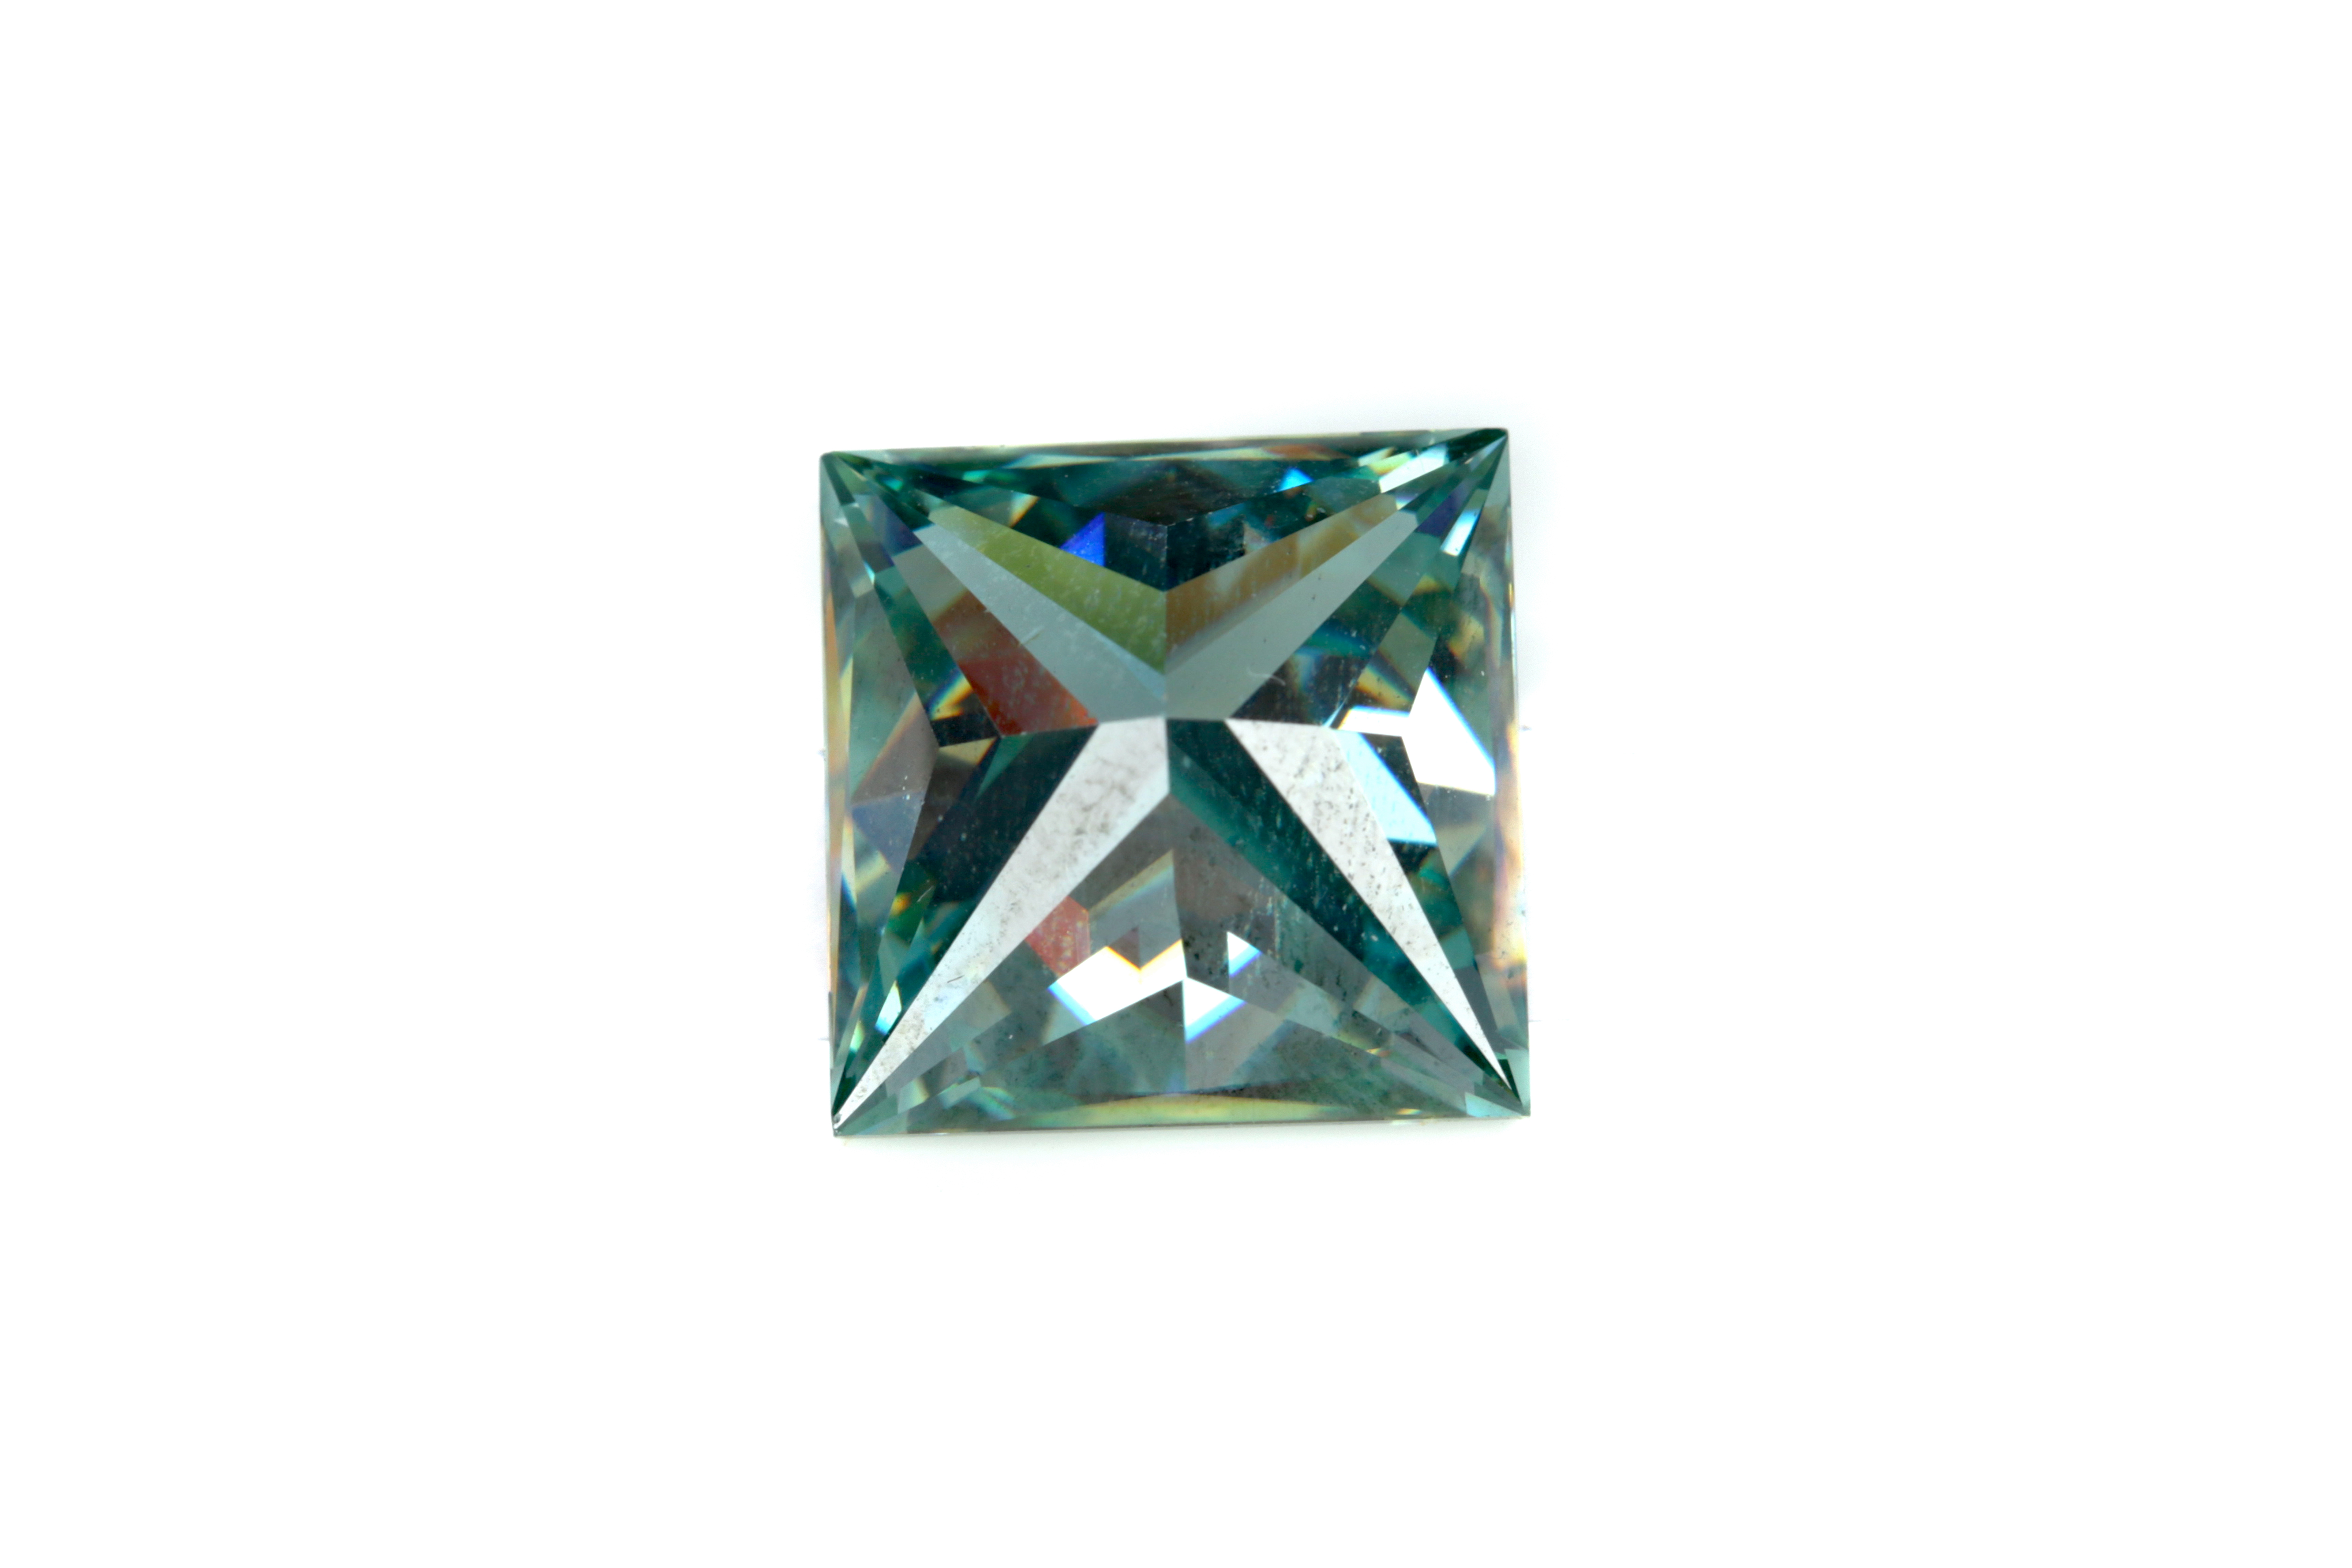 AN UNMOUNTED GREEN MOISSANITE - Image 2 of 2